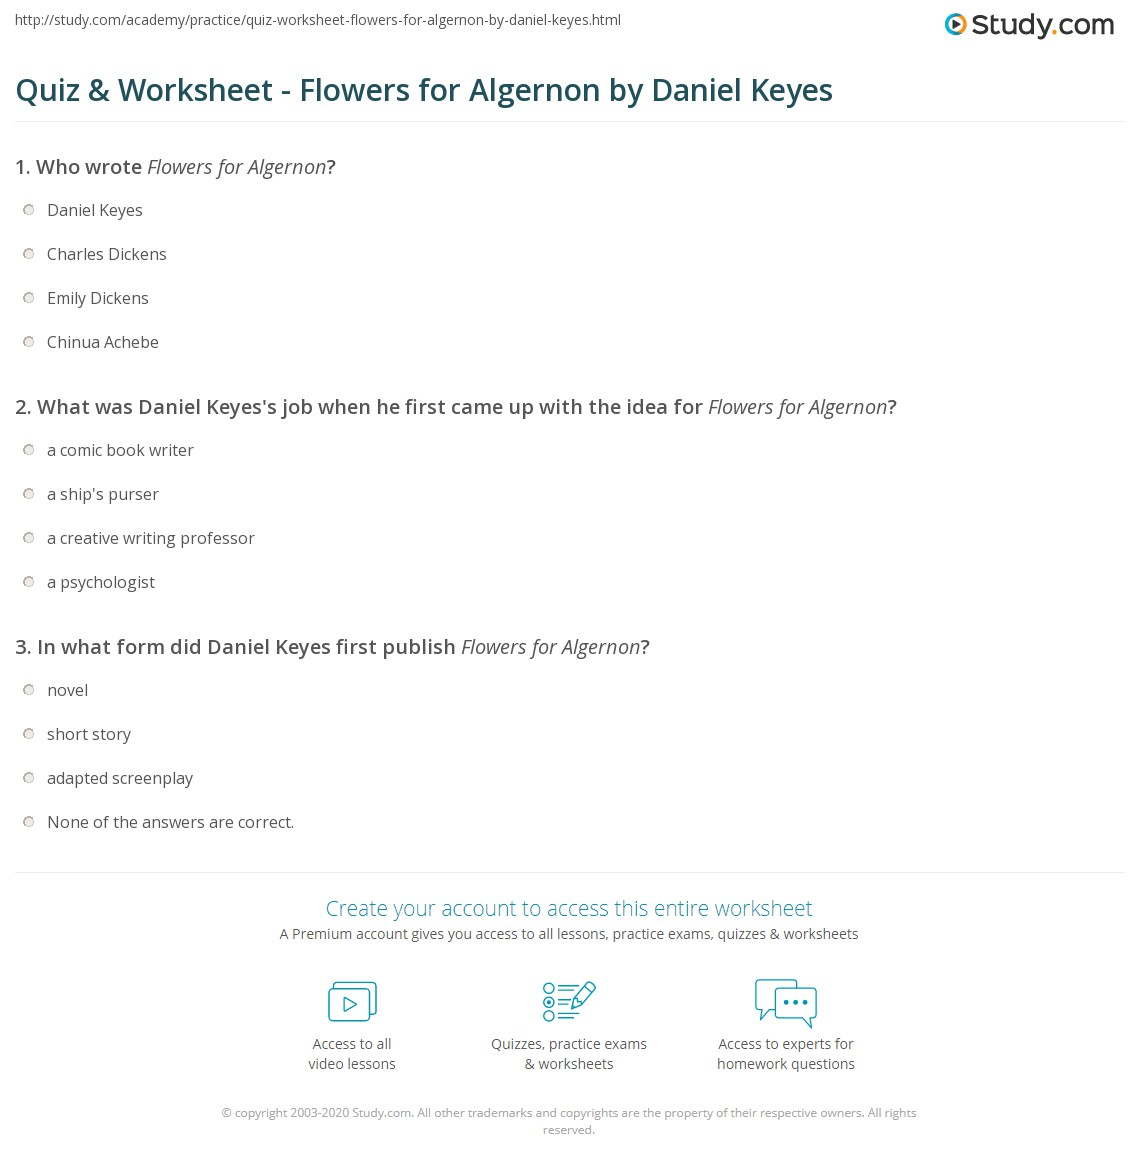 quiz worksheet flowers for algernon by daniel keyes com what was daniel keyes s job when he first came up the idea for flowers for algernon